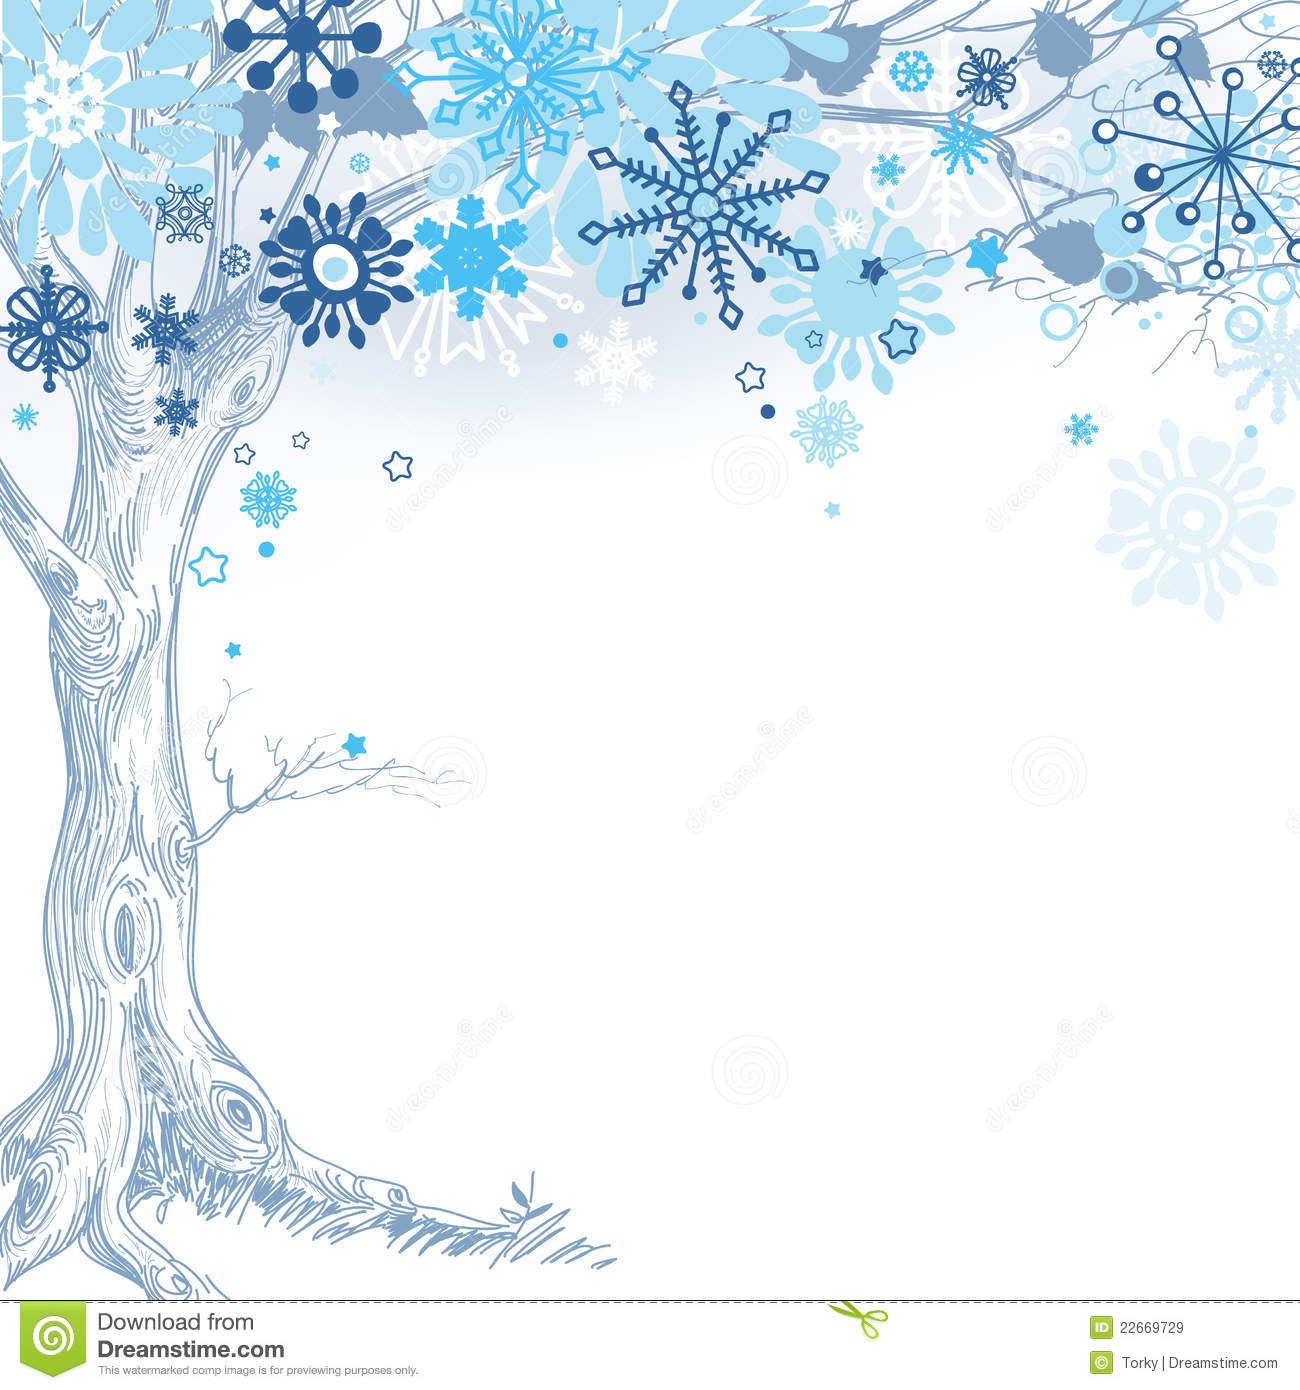 Winter Tree Royalty Free Stock Images - Image: 22669729